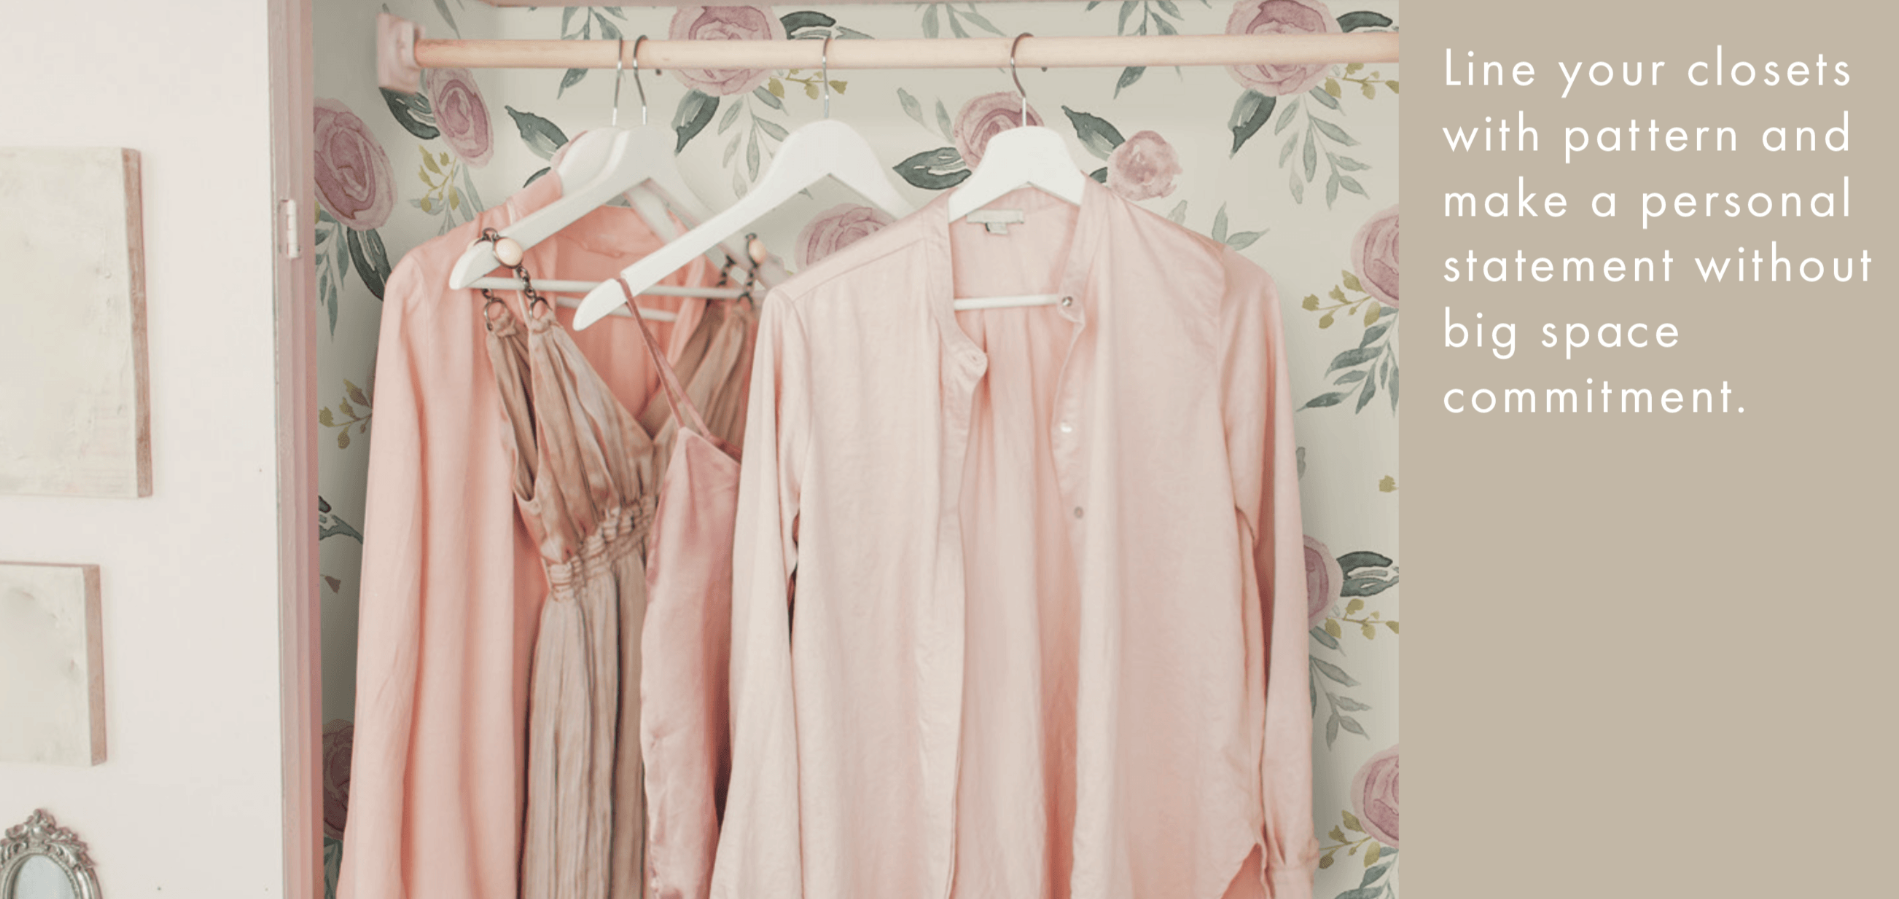 using wallpaper in closets